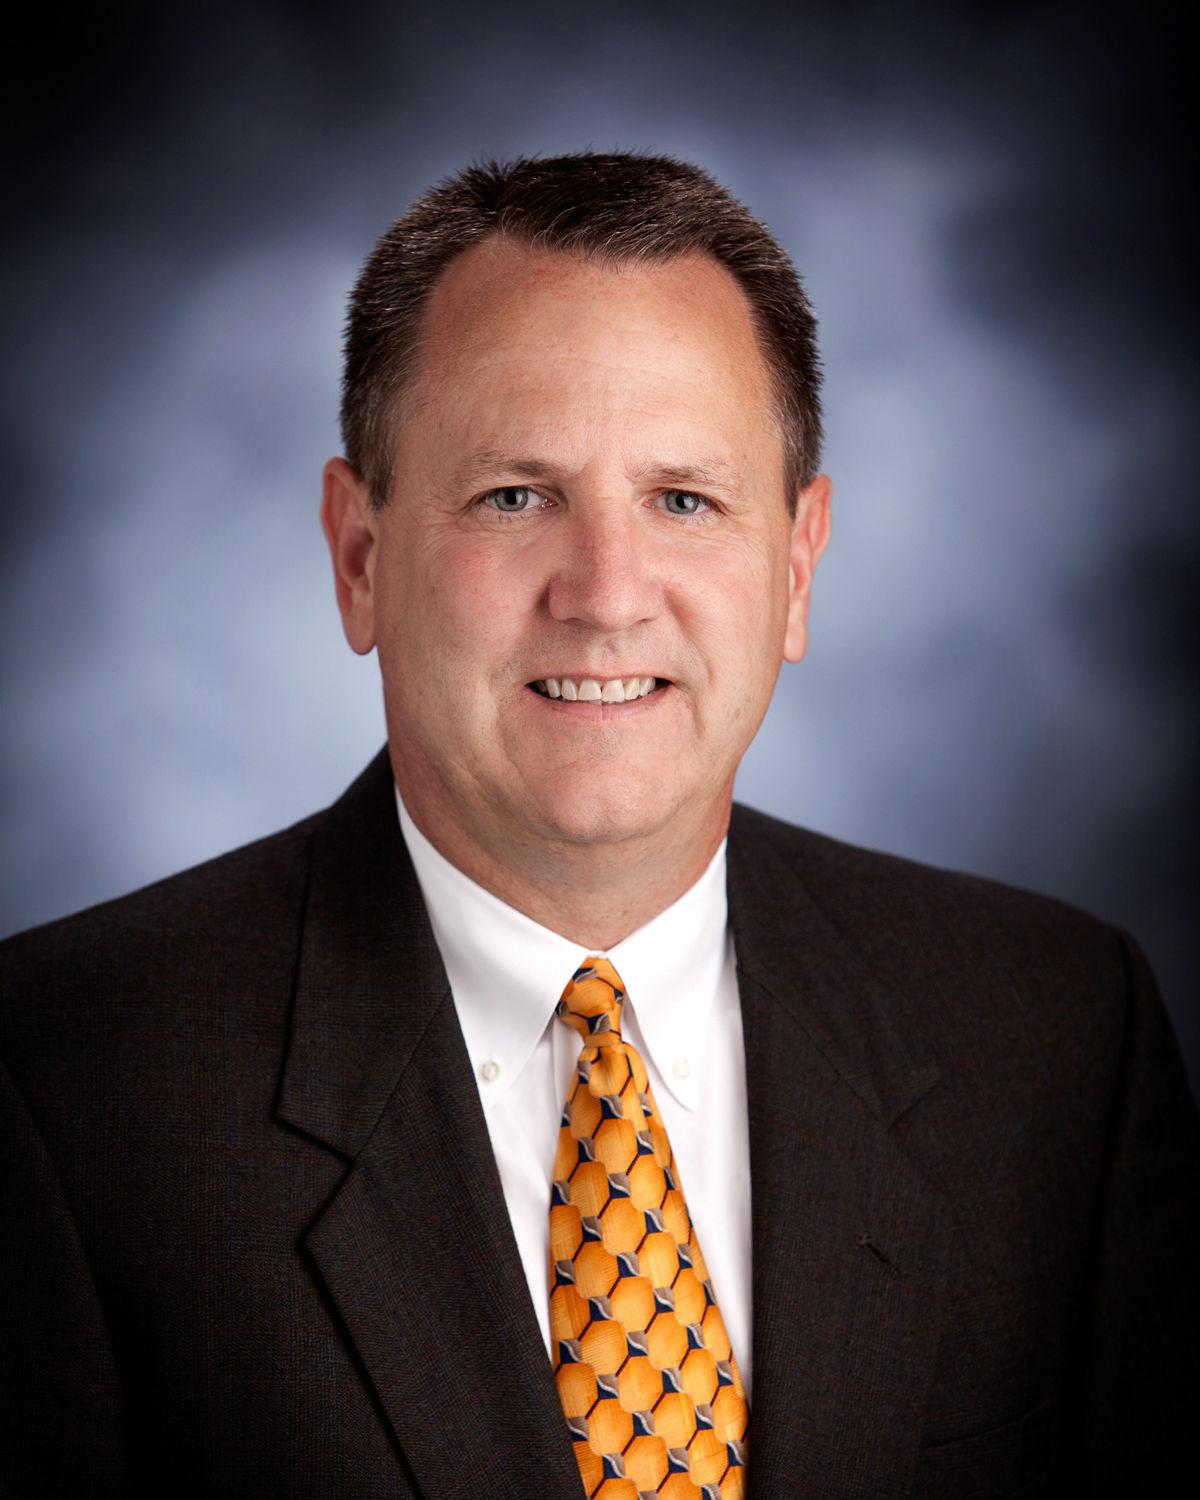 NAI FMA Realty announces promotions, leadership changes